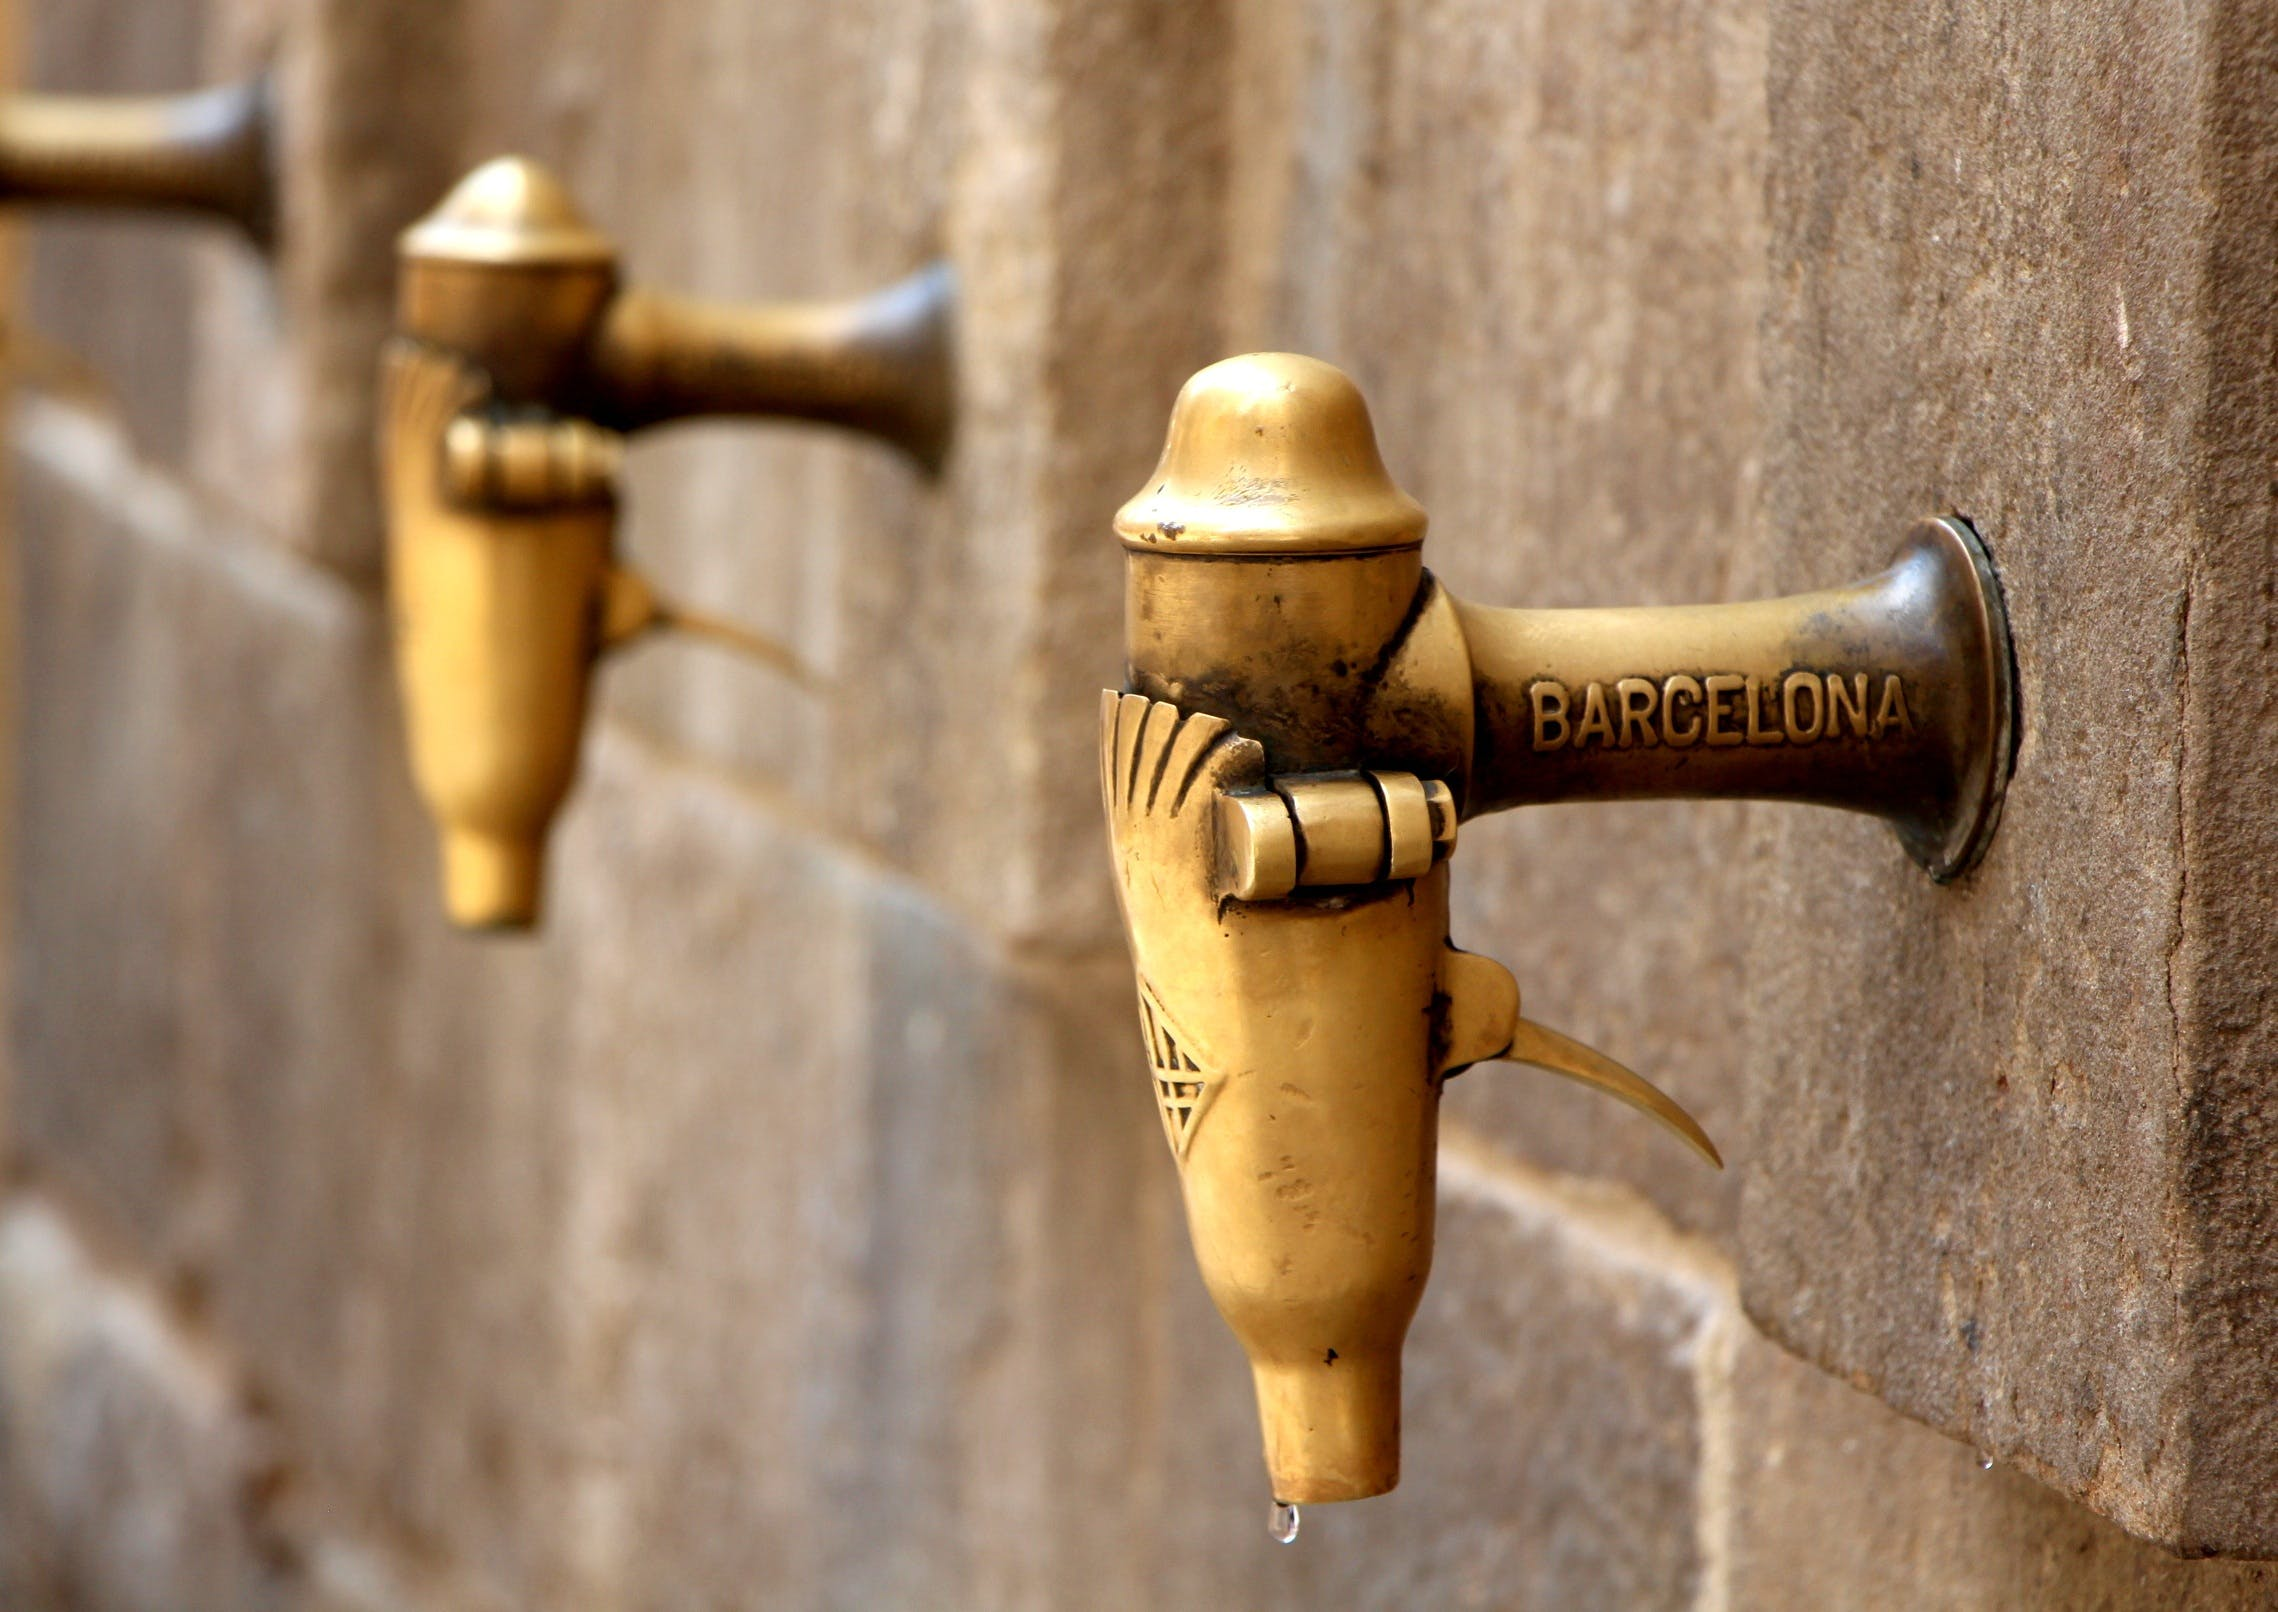 Brown Barcelona Water Faucet Selective Focus Photography